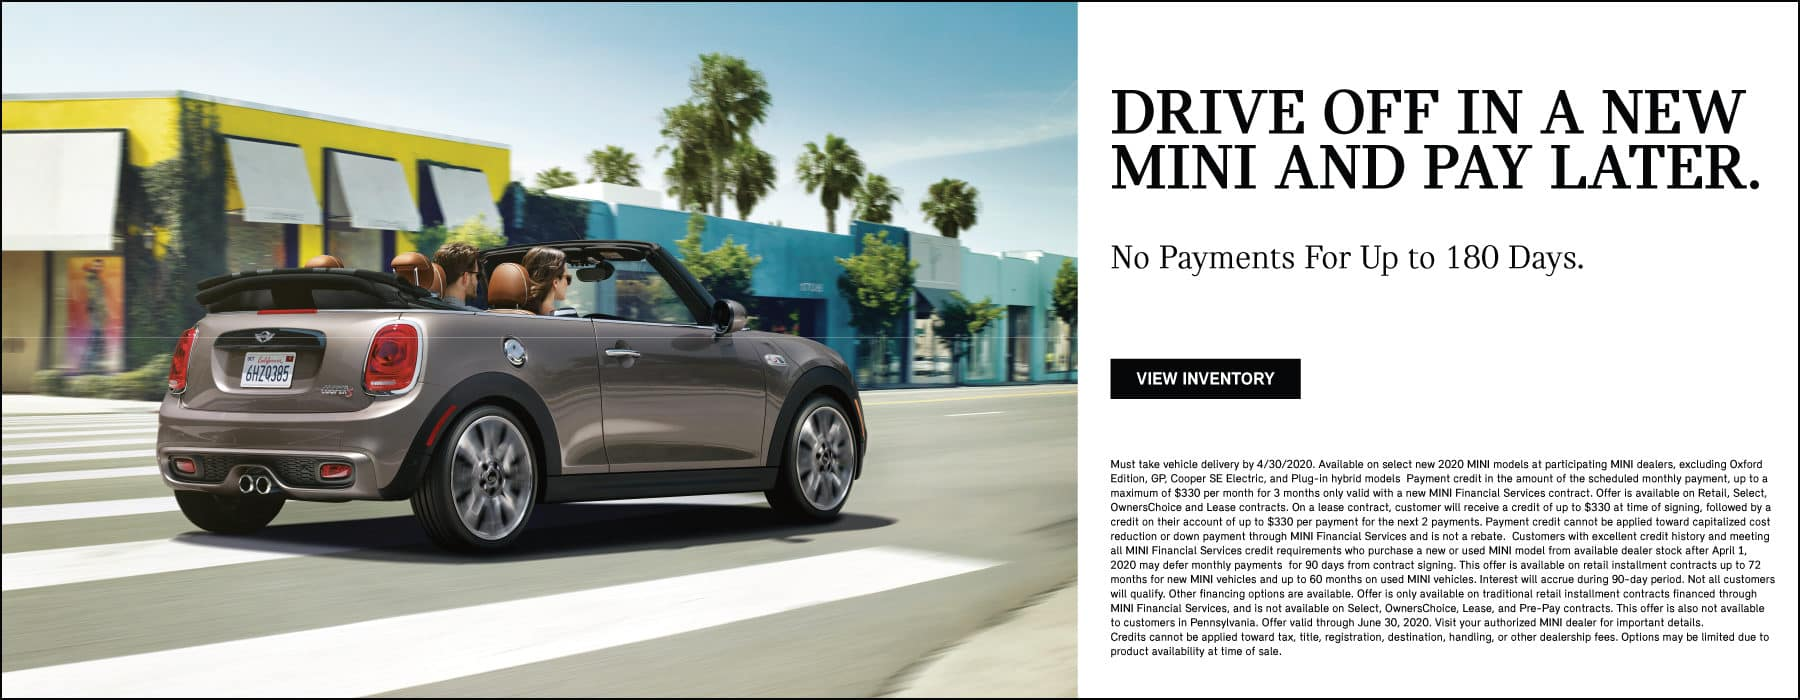 DRIVE OFF IN A NEW MINI AND PAY LATER. NO PAYMENTS FOR UP TO 180 DAYS. VIEW INVENTORY BUTTON.